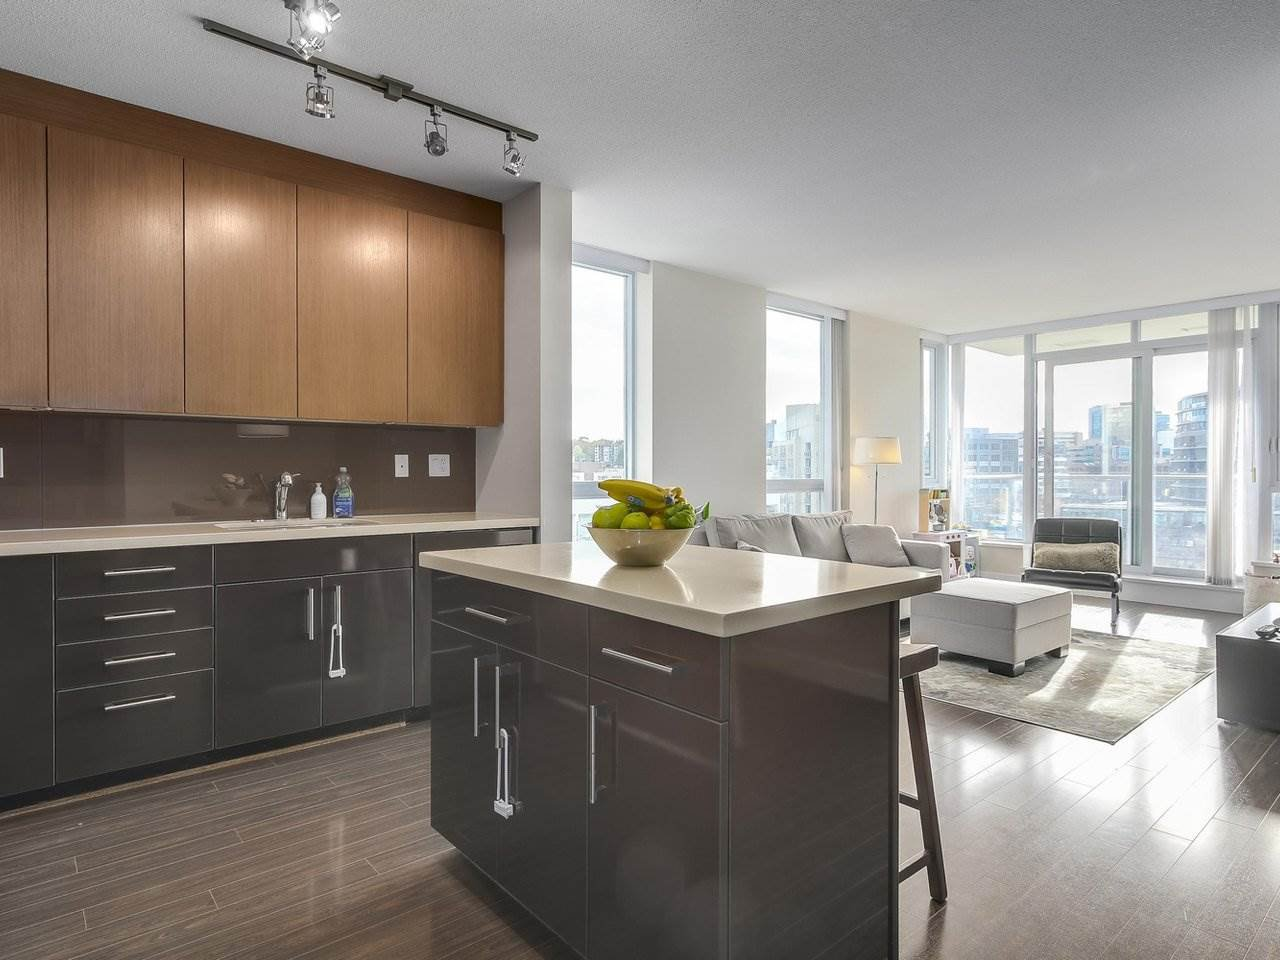 Main Photo: 907 1833 CROWE STREET in : False Creek Condo for sale : MLS®# R2212971